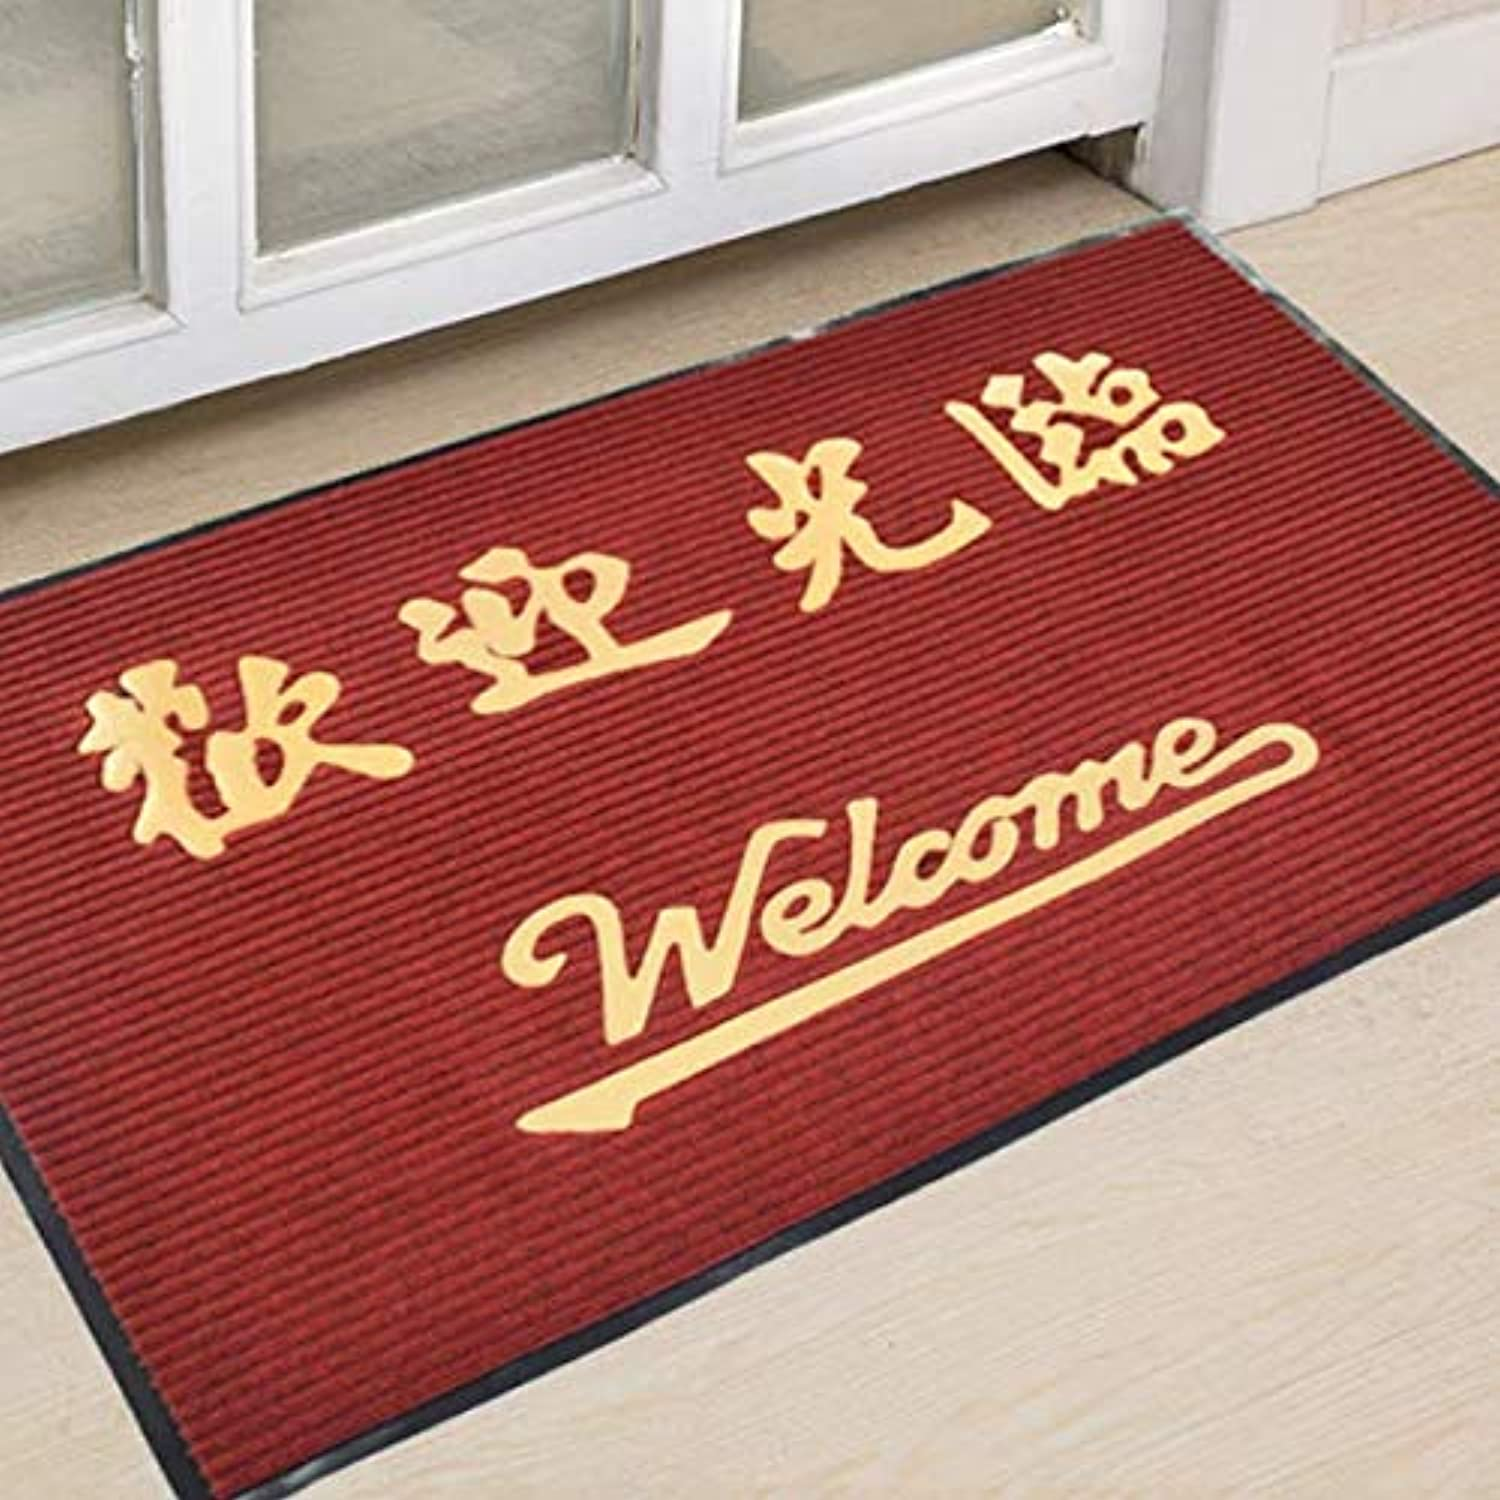 Doormat,Water-Absorption Door mat Anti-skidding Thickened Wear-Resistant Rub Soil mat Easy to Clean Home Decor-Red Wine 80x120cm(31x47inch)